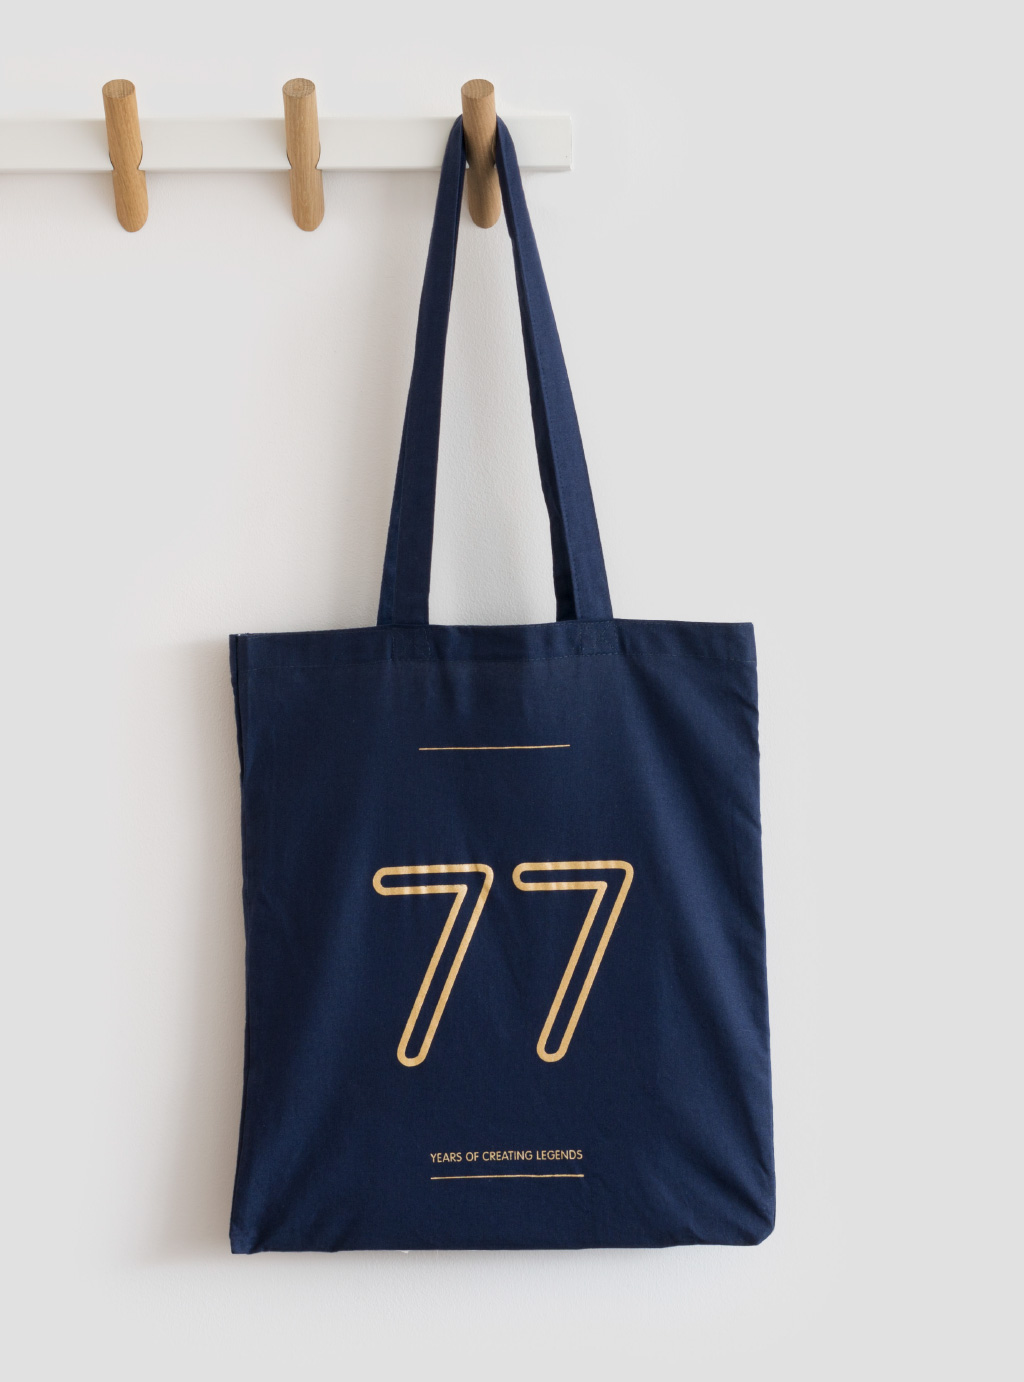 dark blue bag, with the number 77 written in orange, on a hook